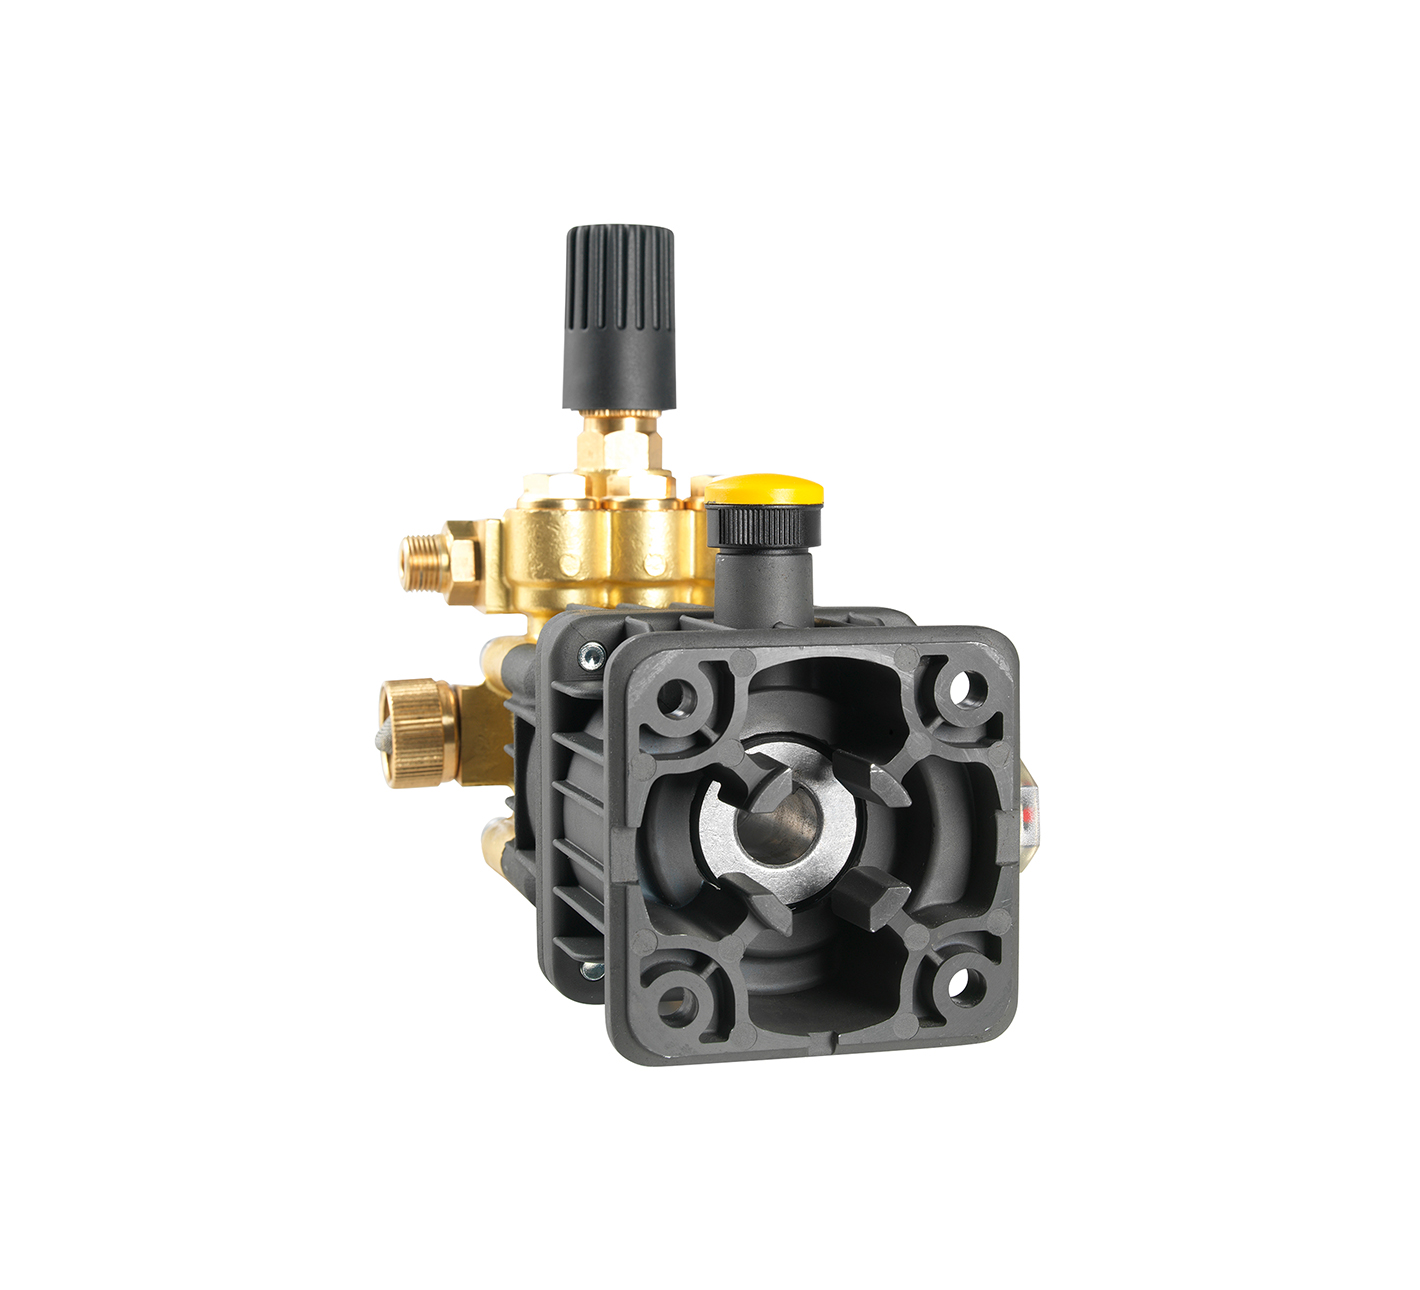 AXS E 5-8 Comet Industrial Pumps